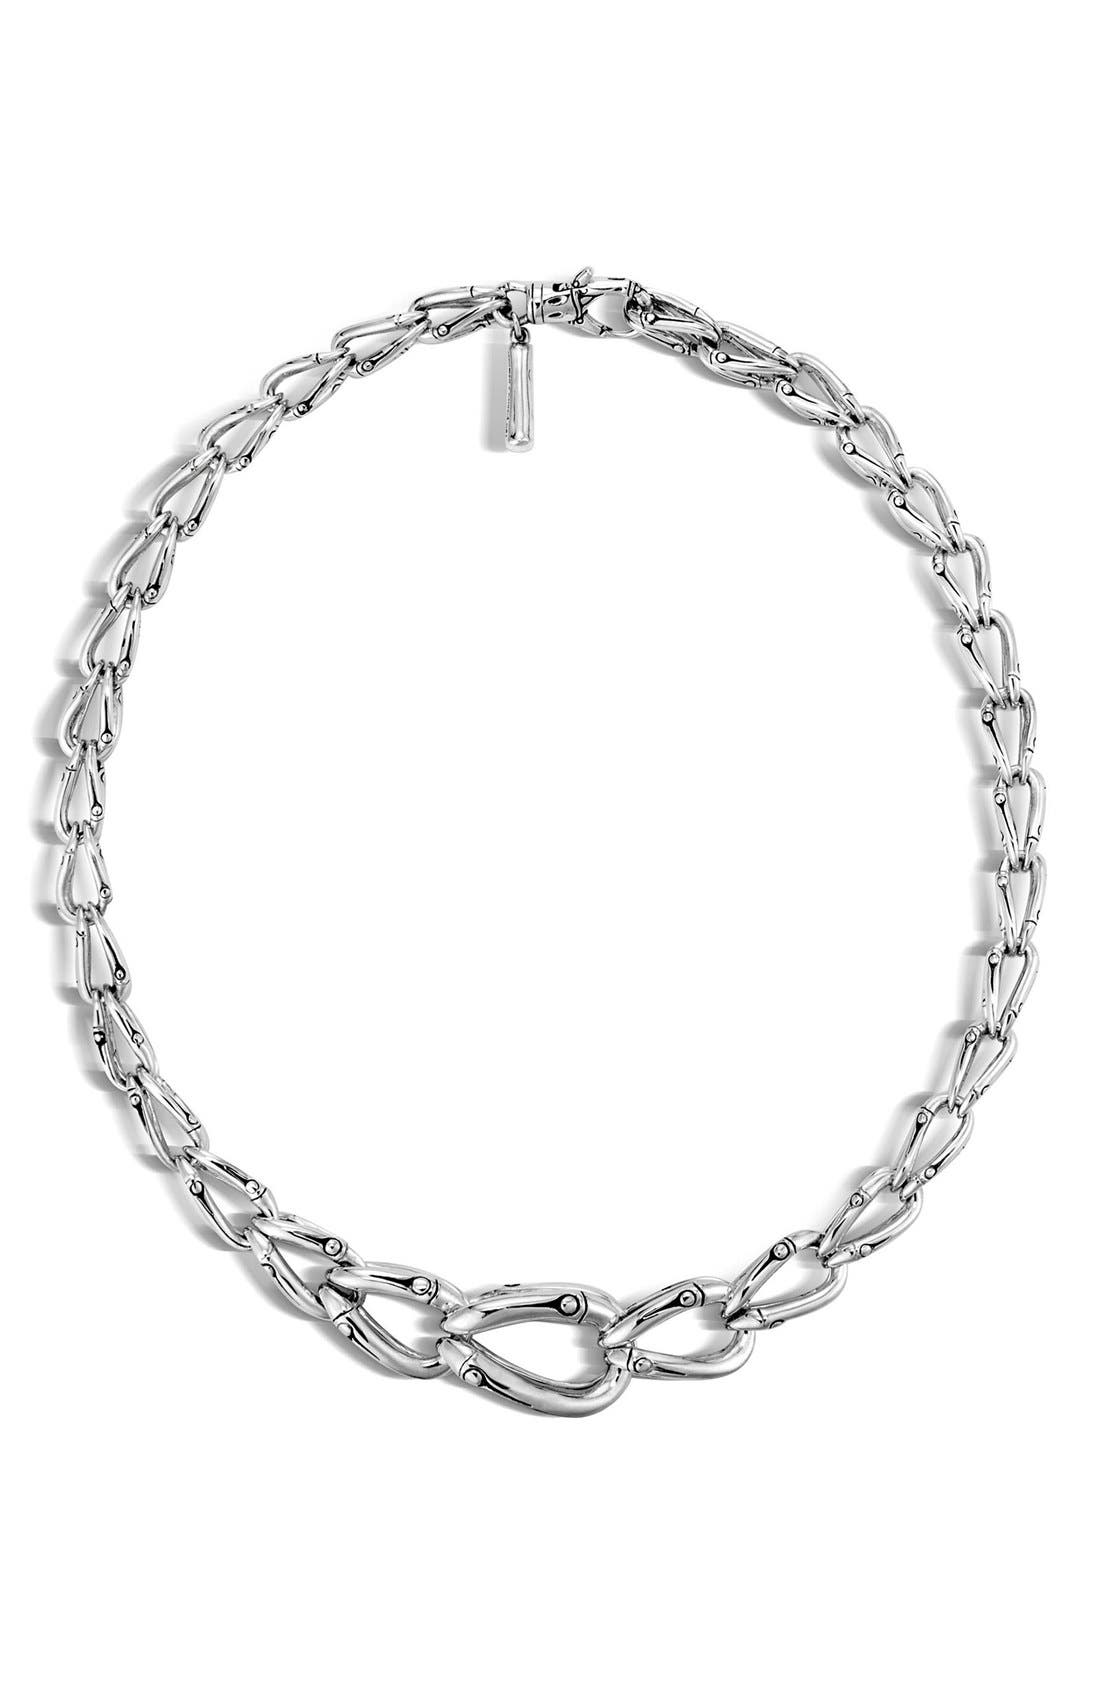 Main Image - John Hardy 'Bamboo' Collar Necklace